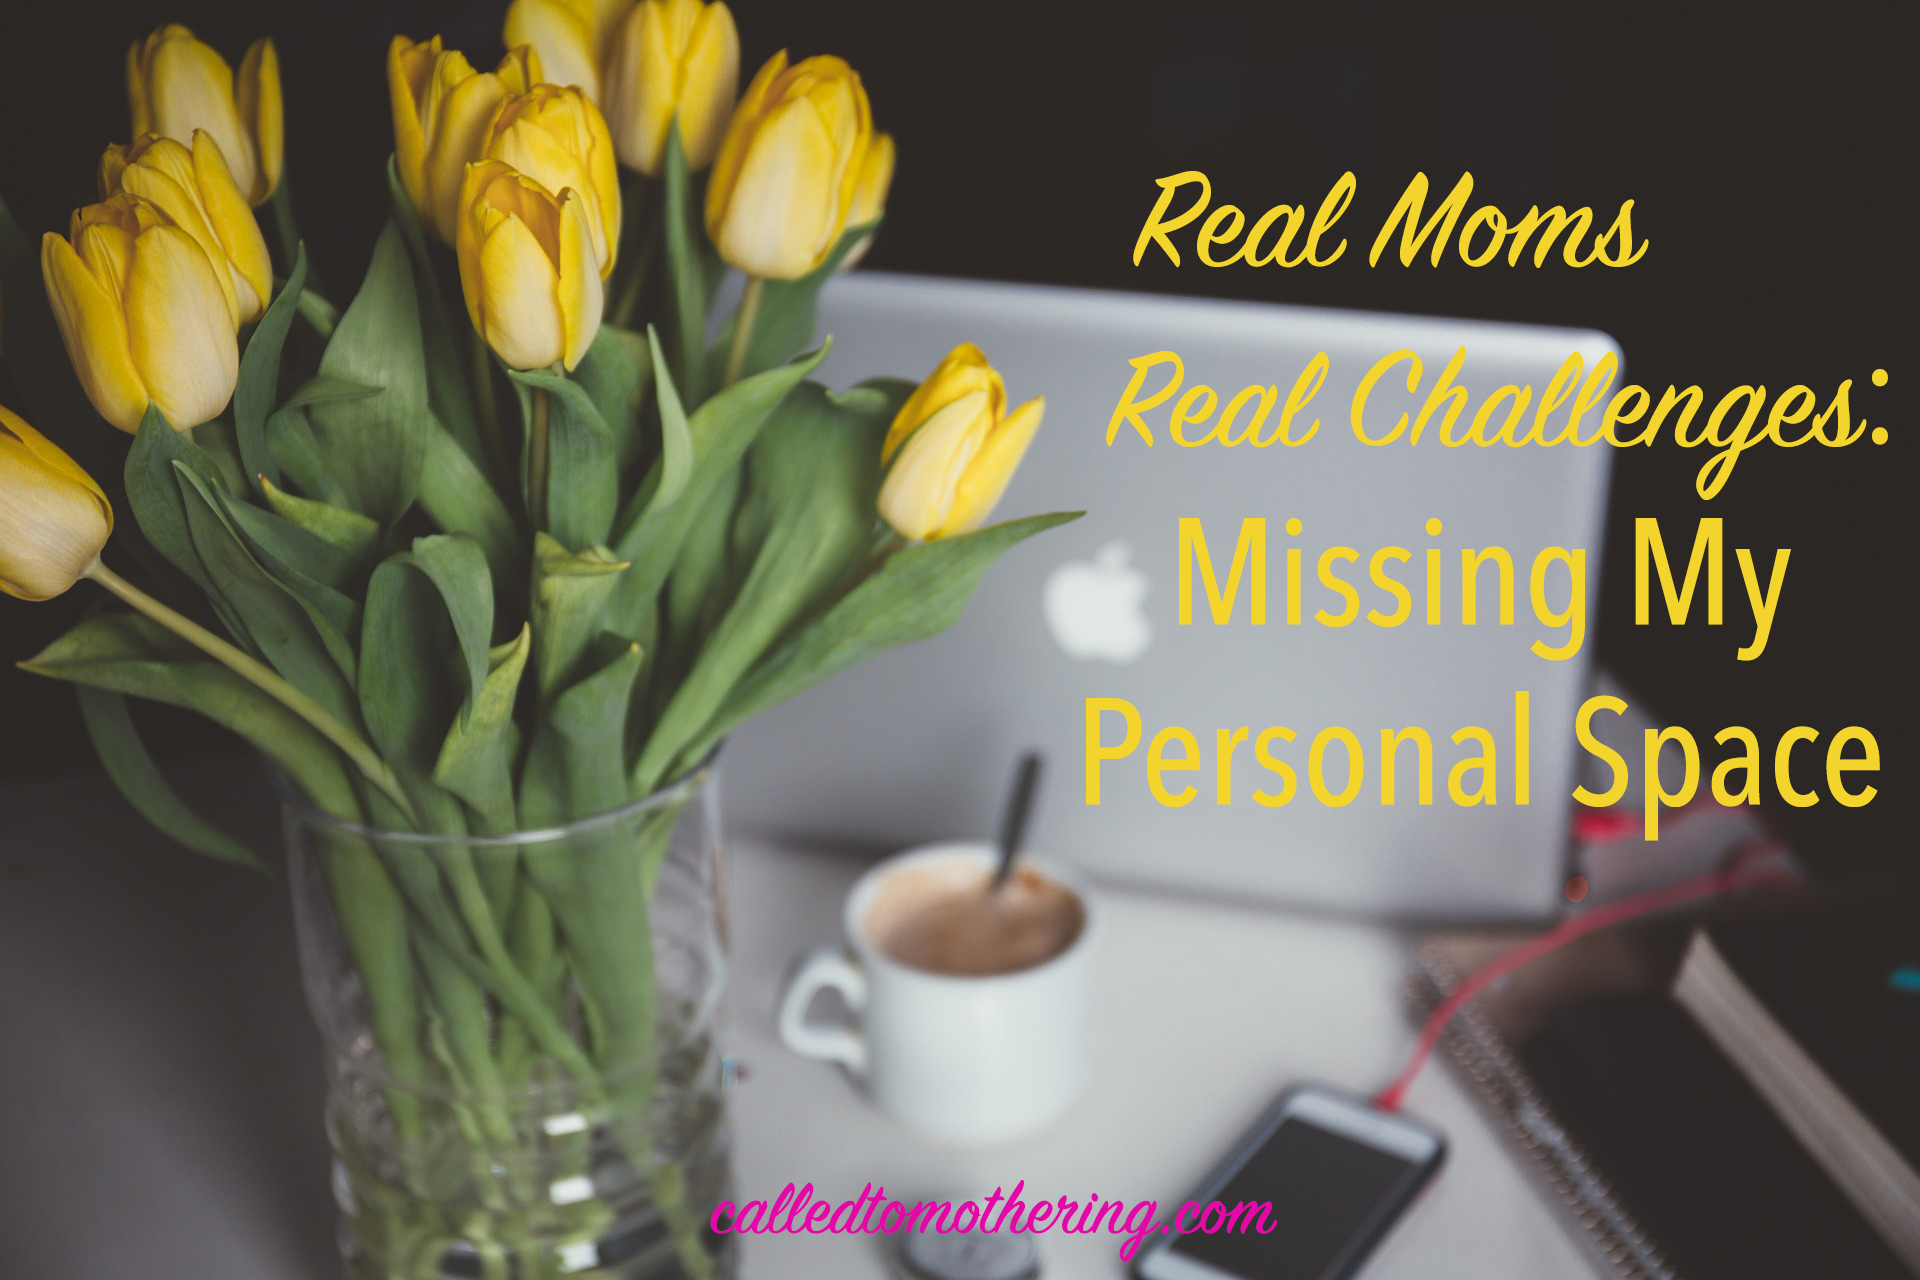 Real Moms Real Challenges: Missing My Personal Space